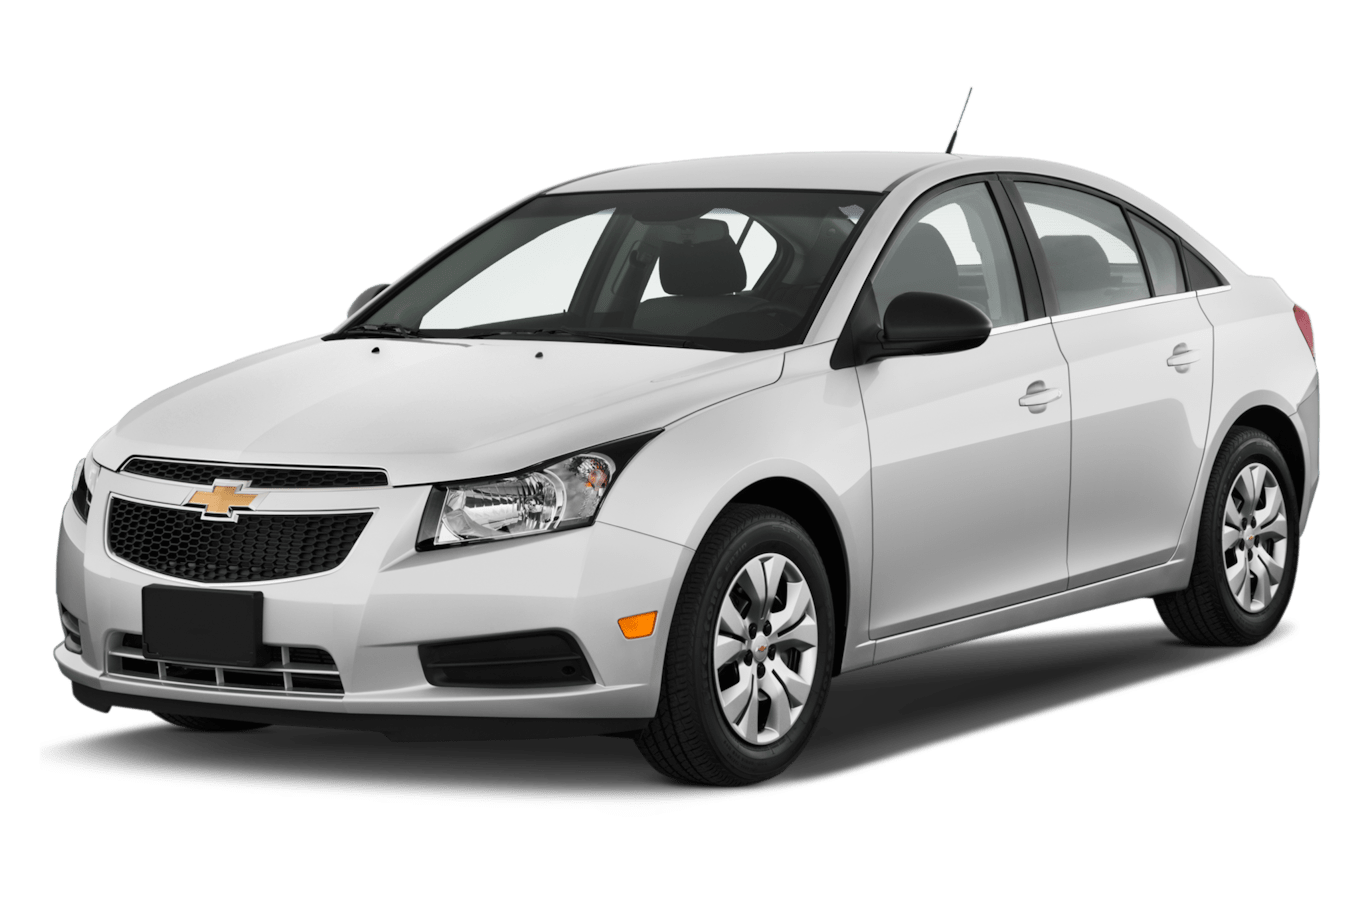 medium resolution of 2014 chevrolet cruze reviews research cruze prices specs diagram likewise chevy cruze 1 4 turbo engine in addition ecotec